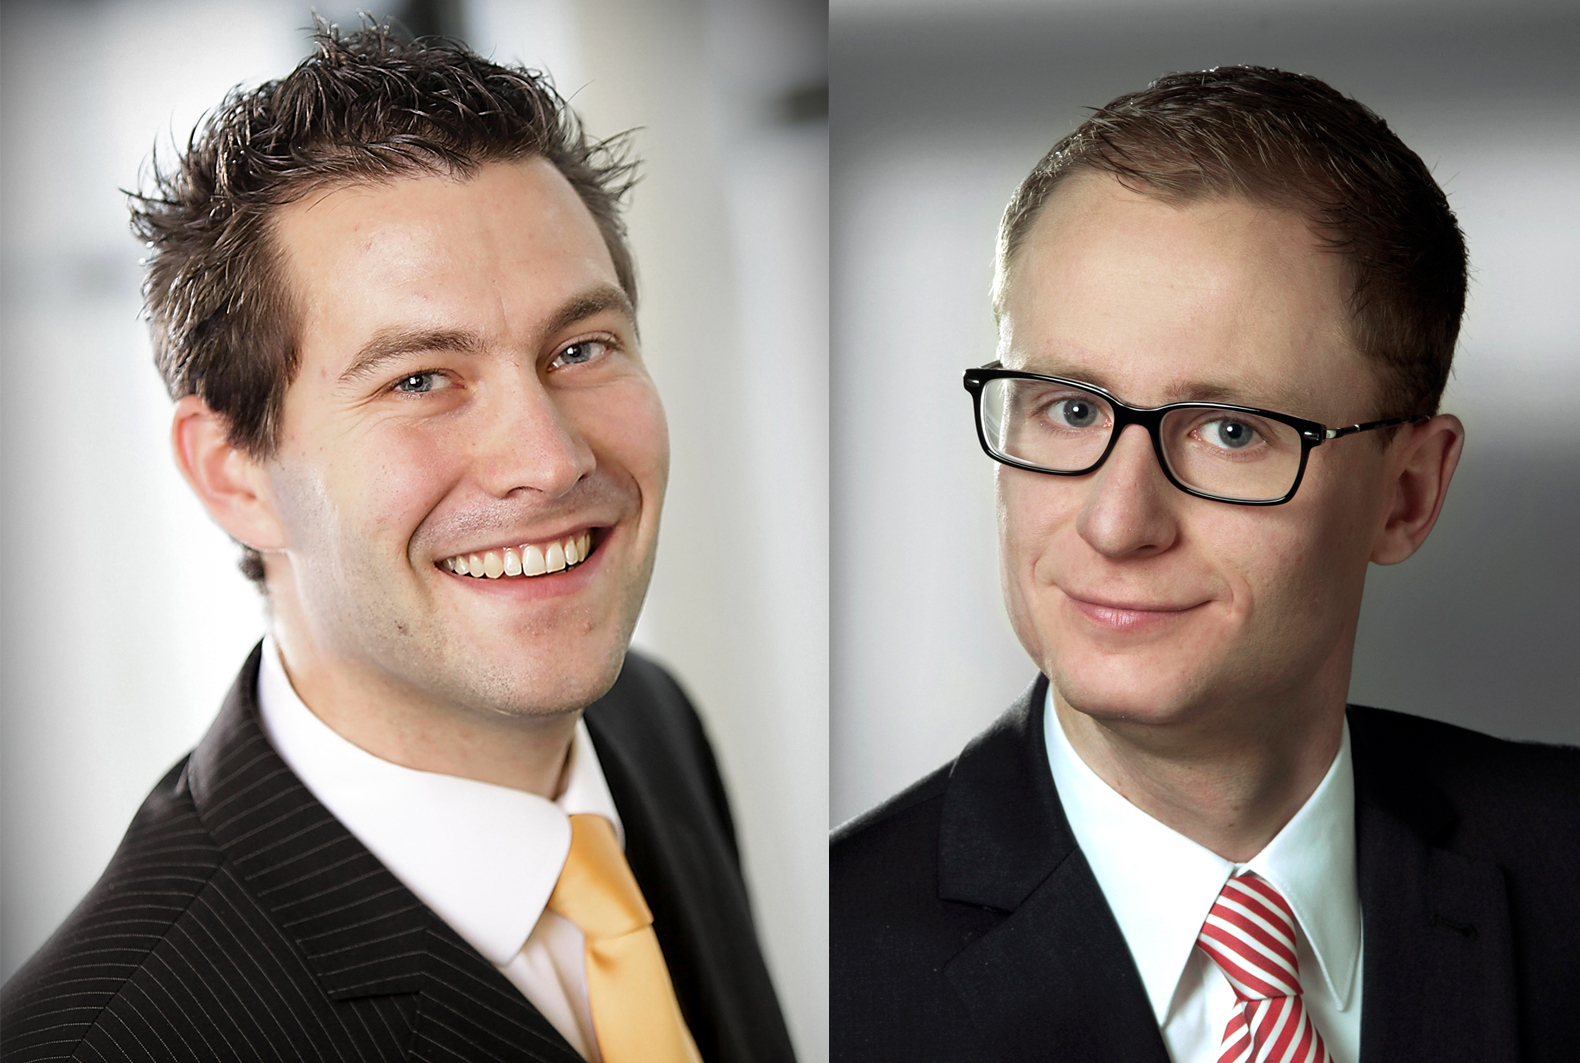 Lukas Posniak (left) and Christoph Pregizer in their younger versions before the PuttView story had begun . © puttview.com